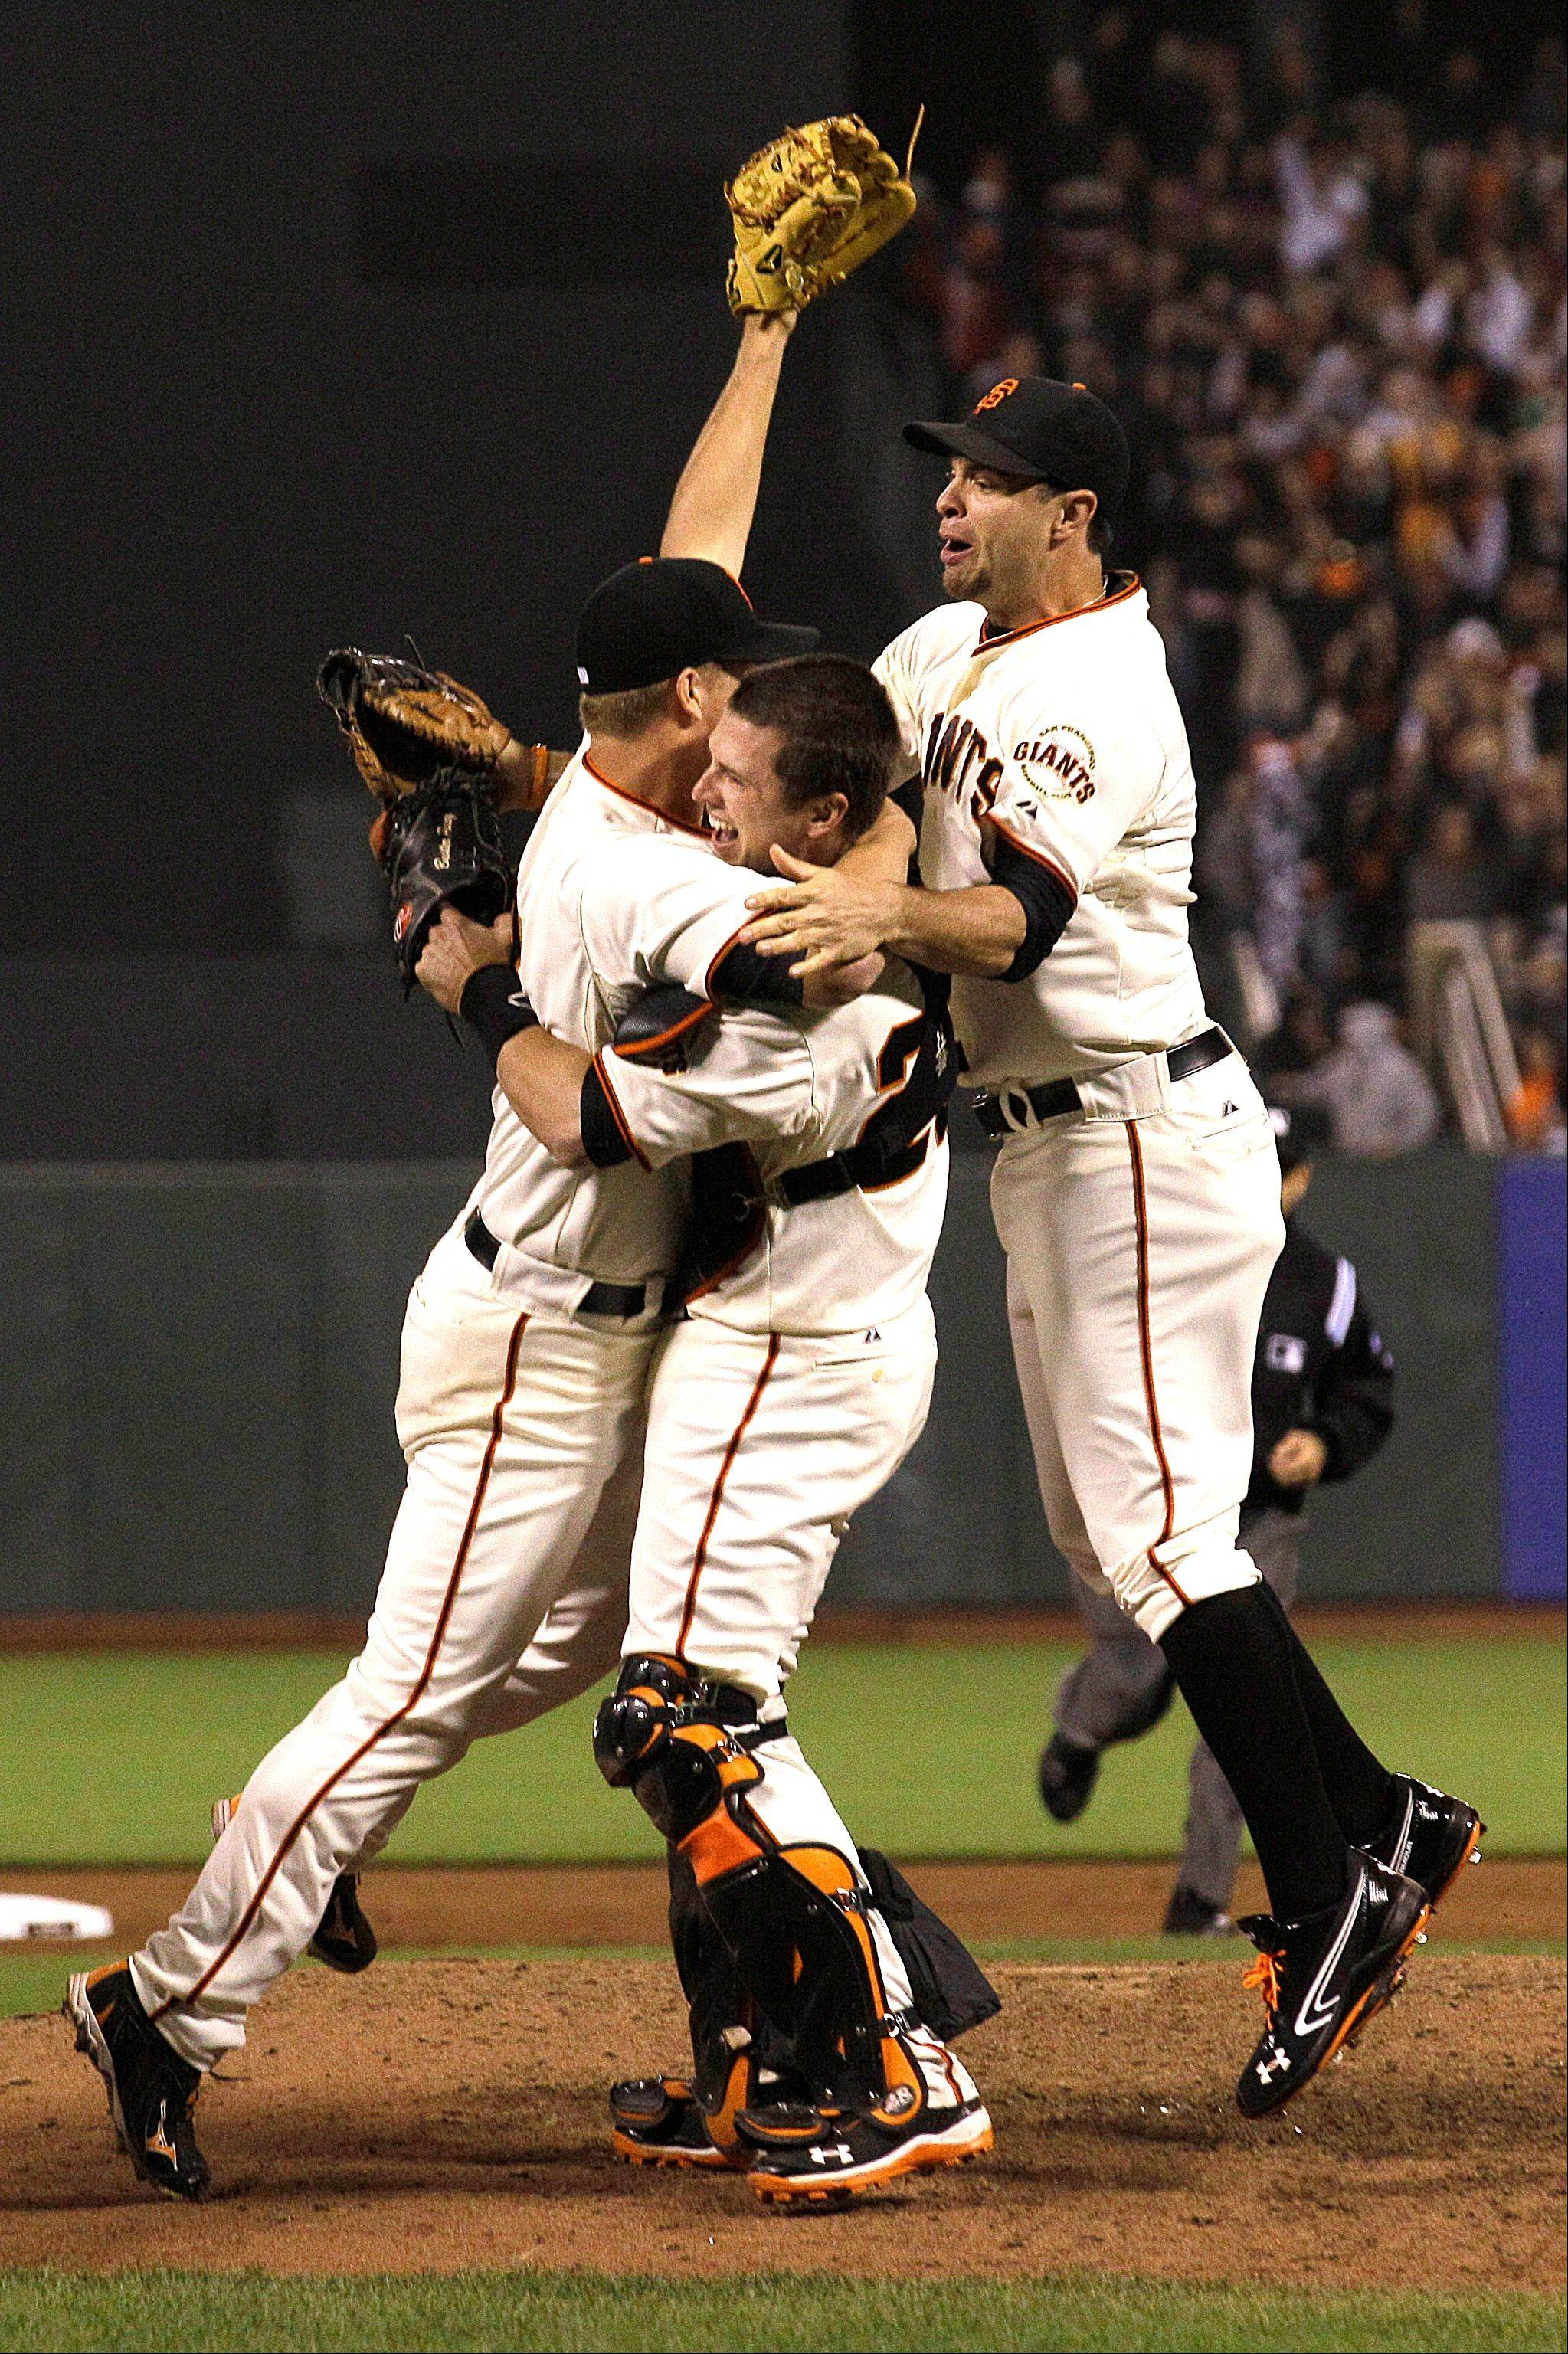 San Francisco Giants pitcher Matt Cain, left, celebrates Wednesday with catcher Buster Posey, center, and first baseman Brandon Belt after the final out against the Houston Astros in San Francisco.